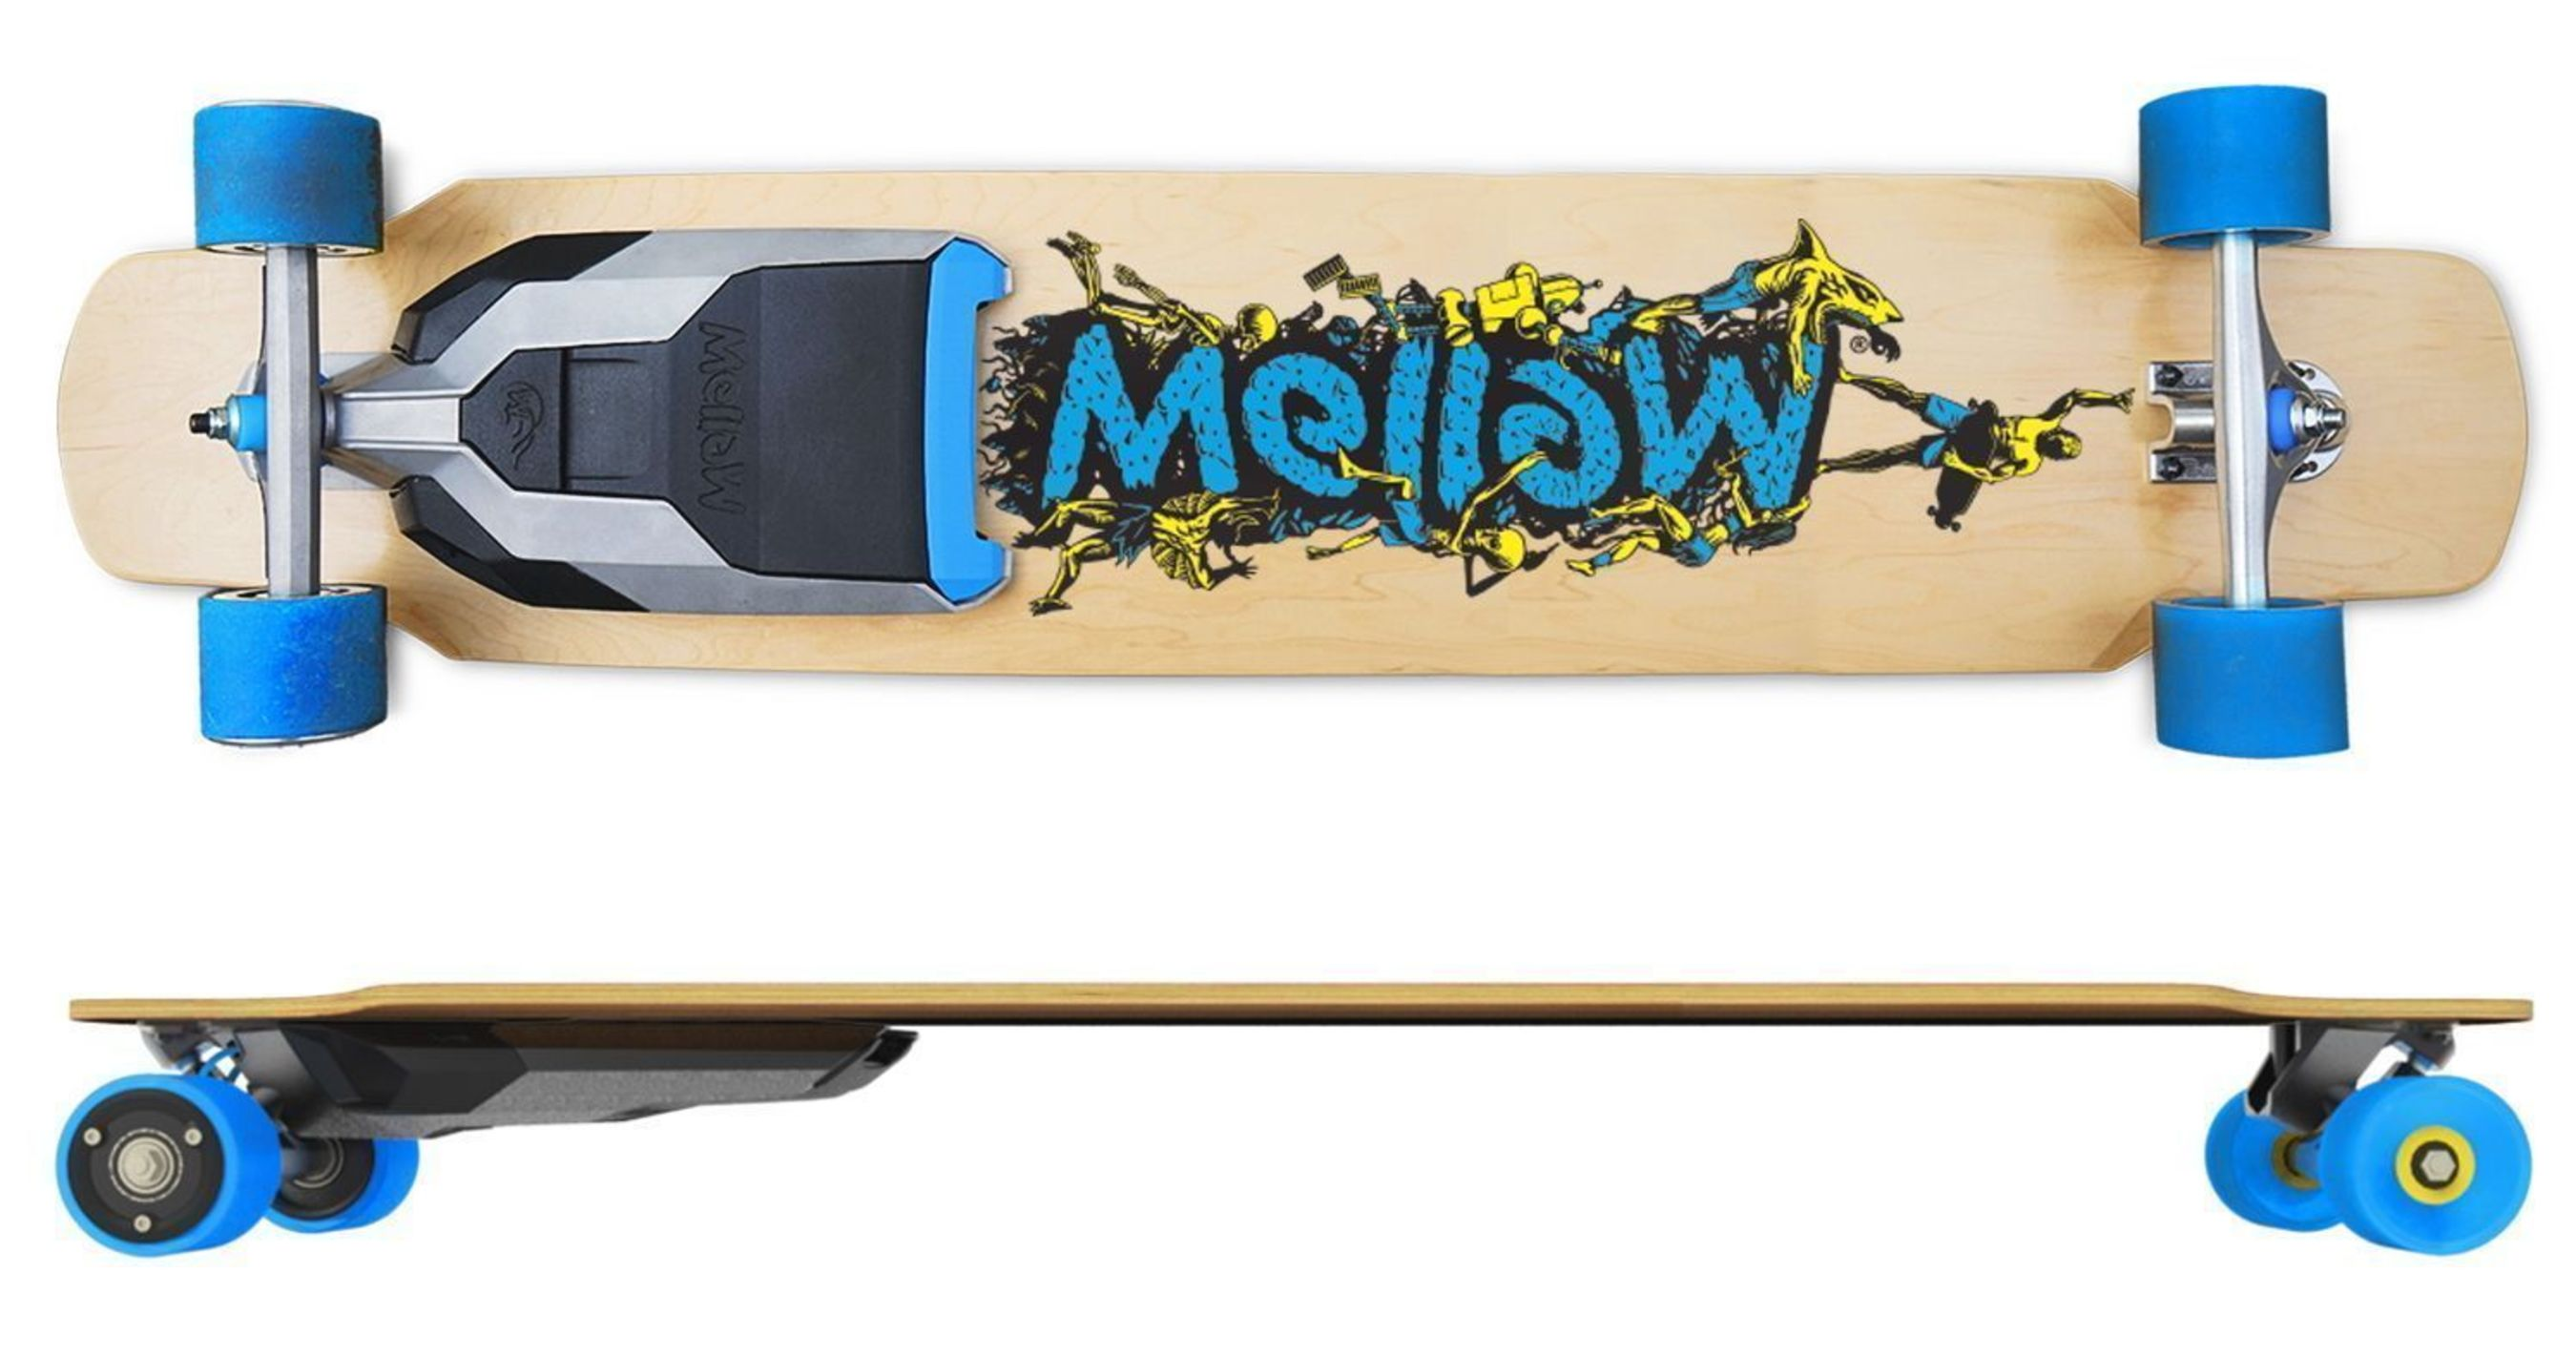 Mellow - The First Electric Drive that Fits on Every Skateboard - Now on Kickstarter